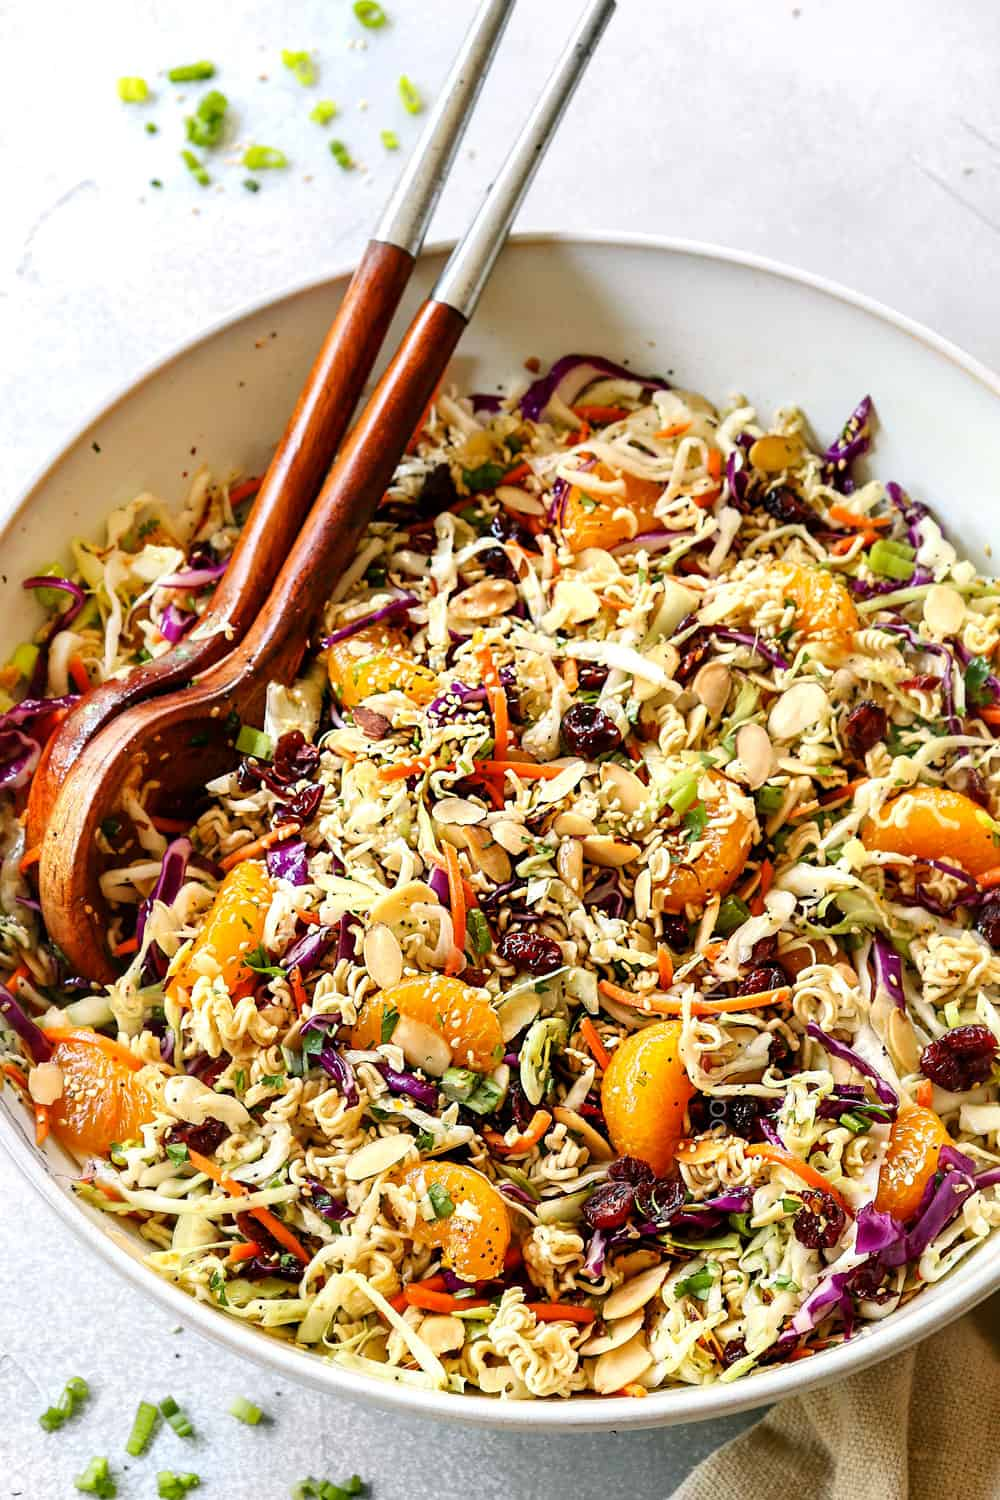 showing how to make Asian Ramen Noodle Salad by tossing the salad with the dressing in a white bowl